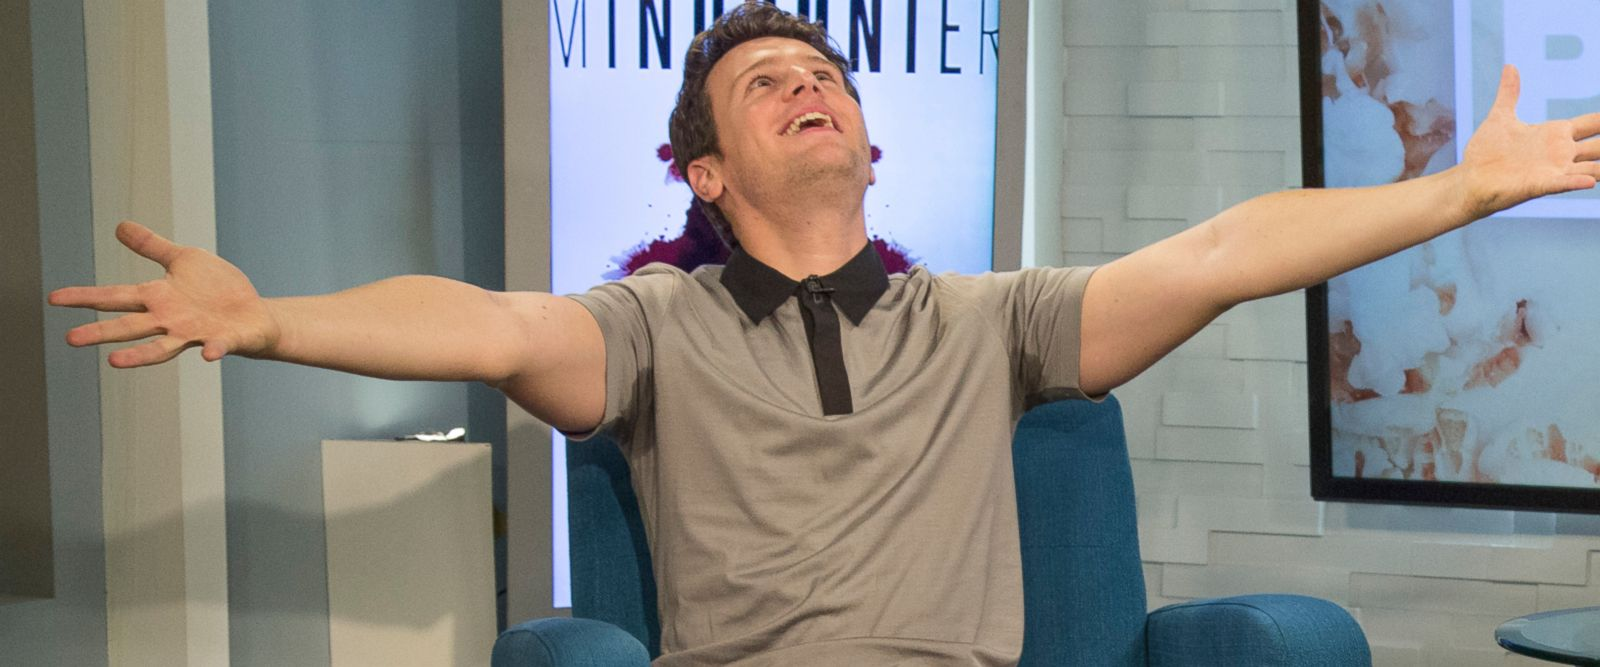 VIDEO: 'Mindhunter' star Jonathan Groff sings 'If You Could Read My Mind'